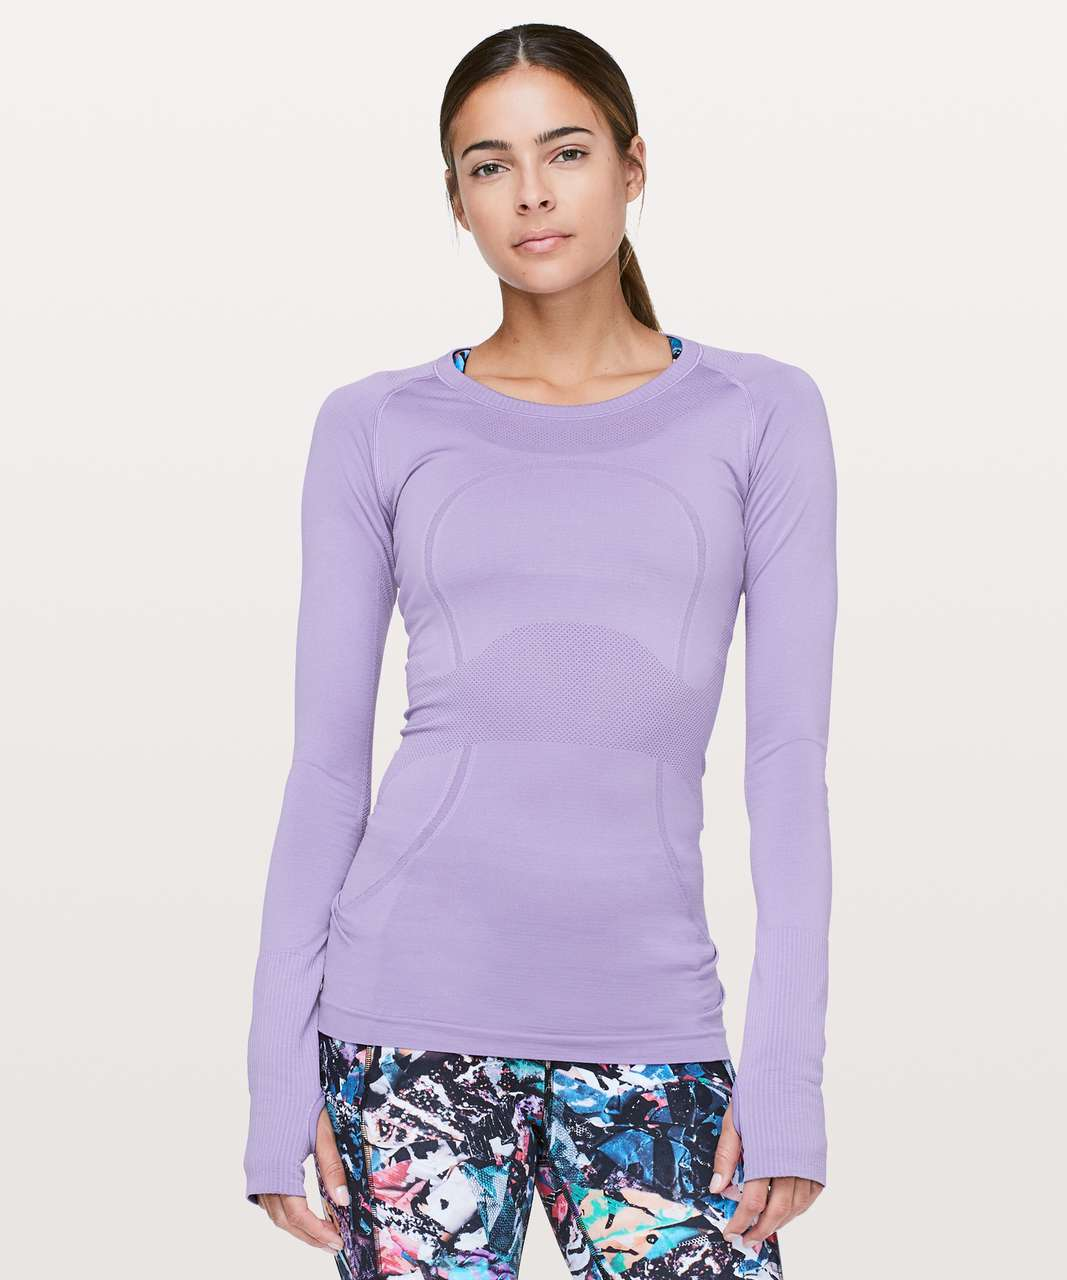 Lululemon Swiftly Tech Long Sleeve Crew - Enchanted Iris / Enchanted Iris